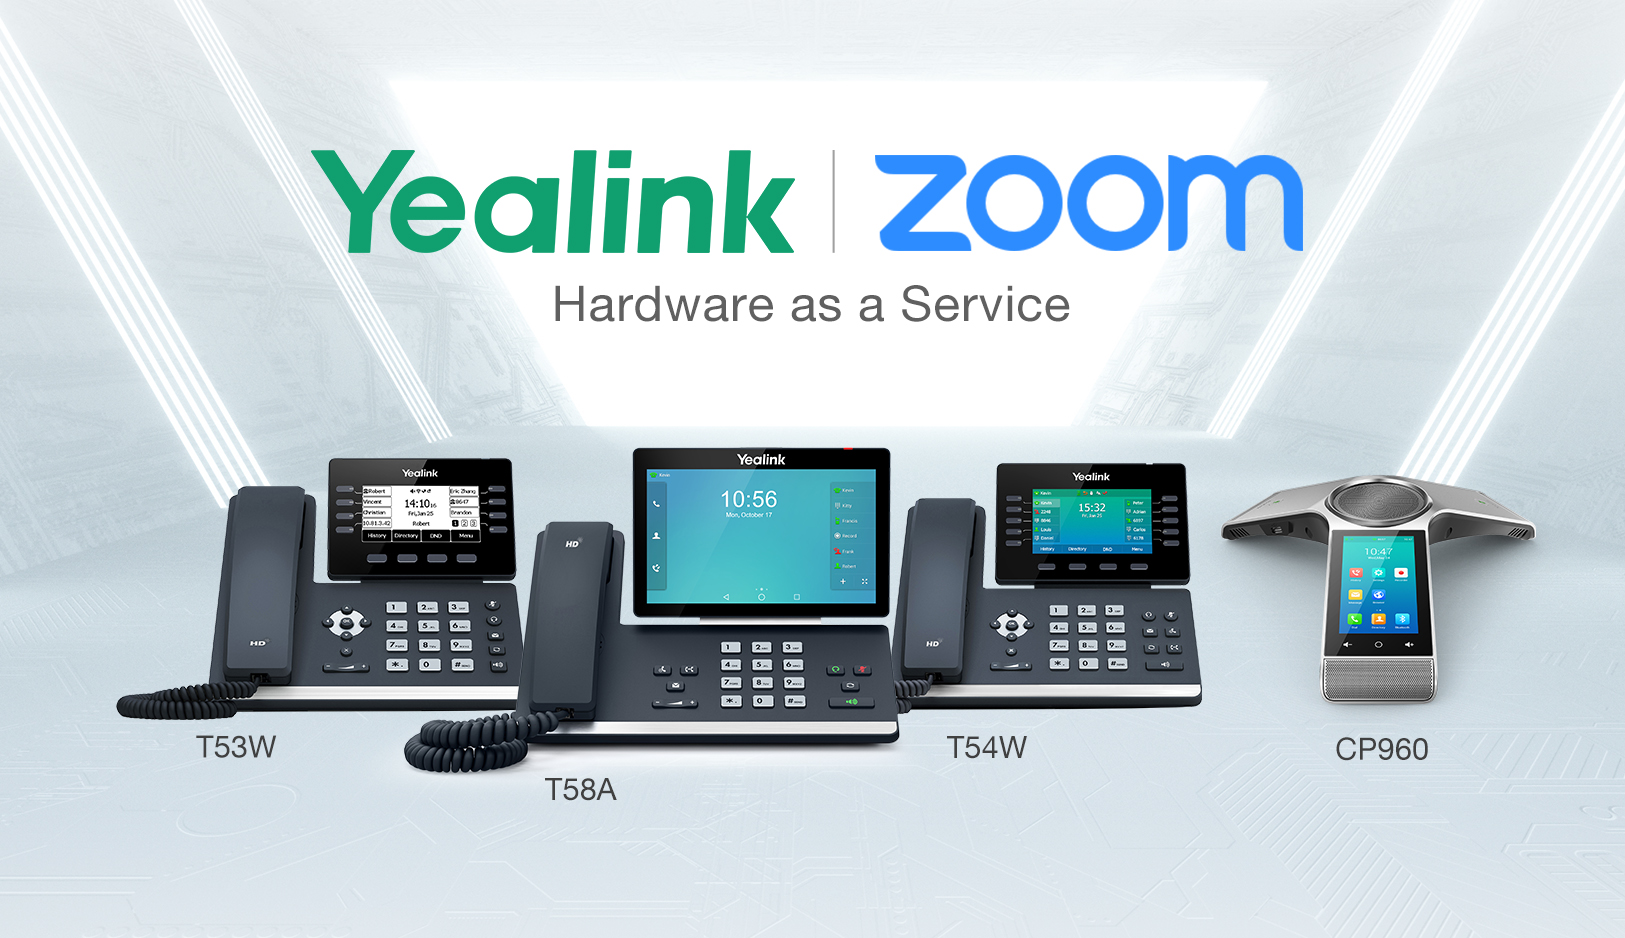 Yealink Contributes to Zoom Hardware as a Service